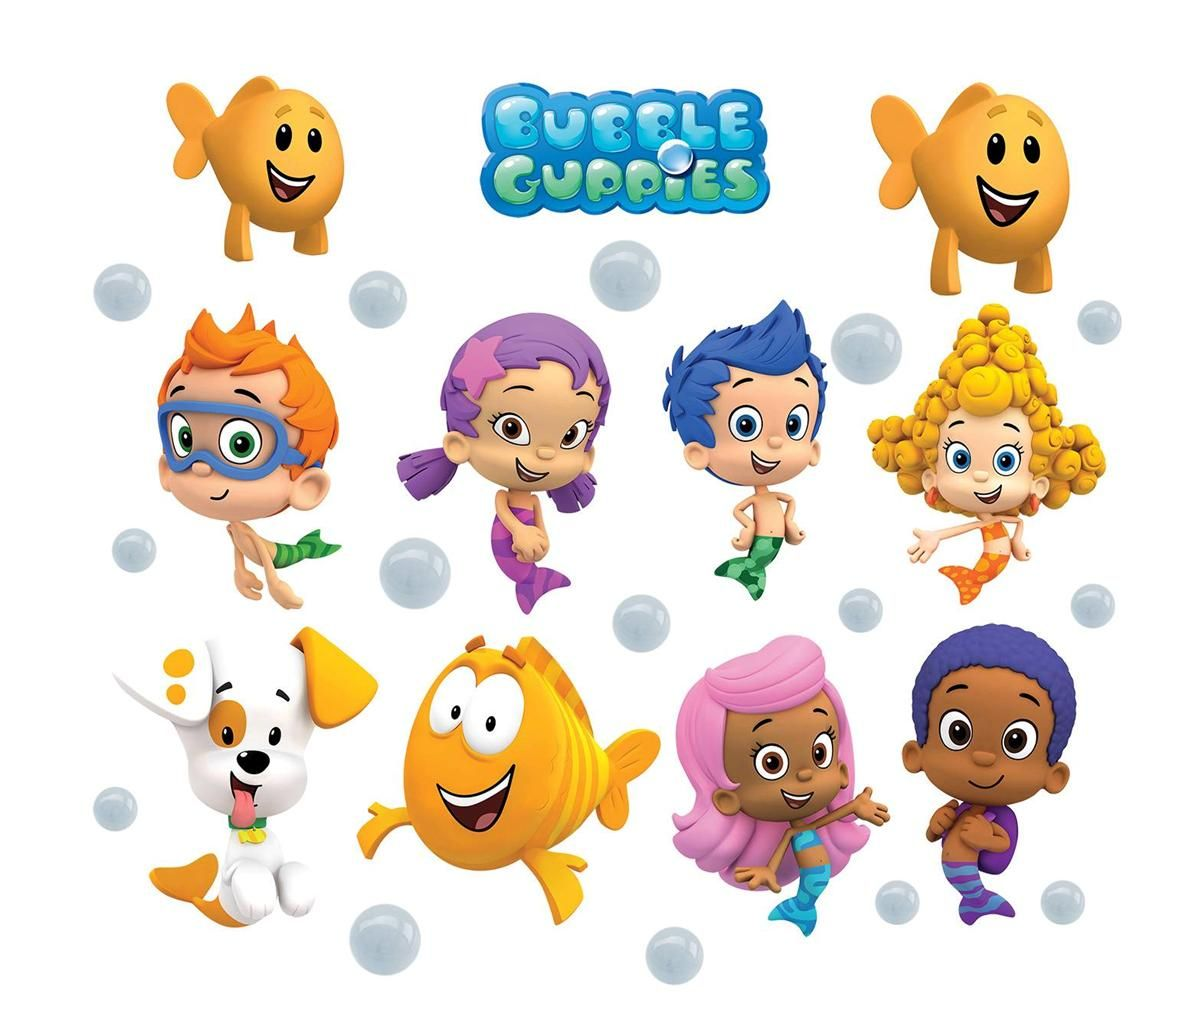 Details about BUBBLE GUPPIES 10 CHARACTERS + LOGO Decal Removable ...